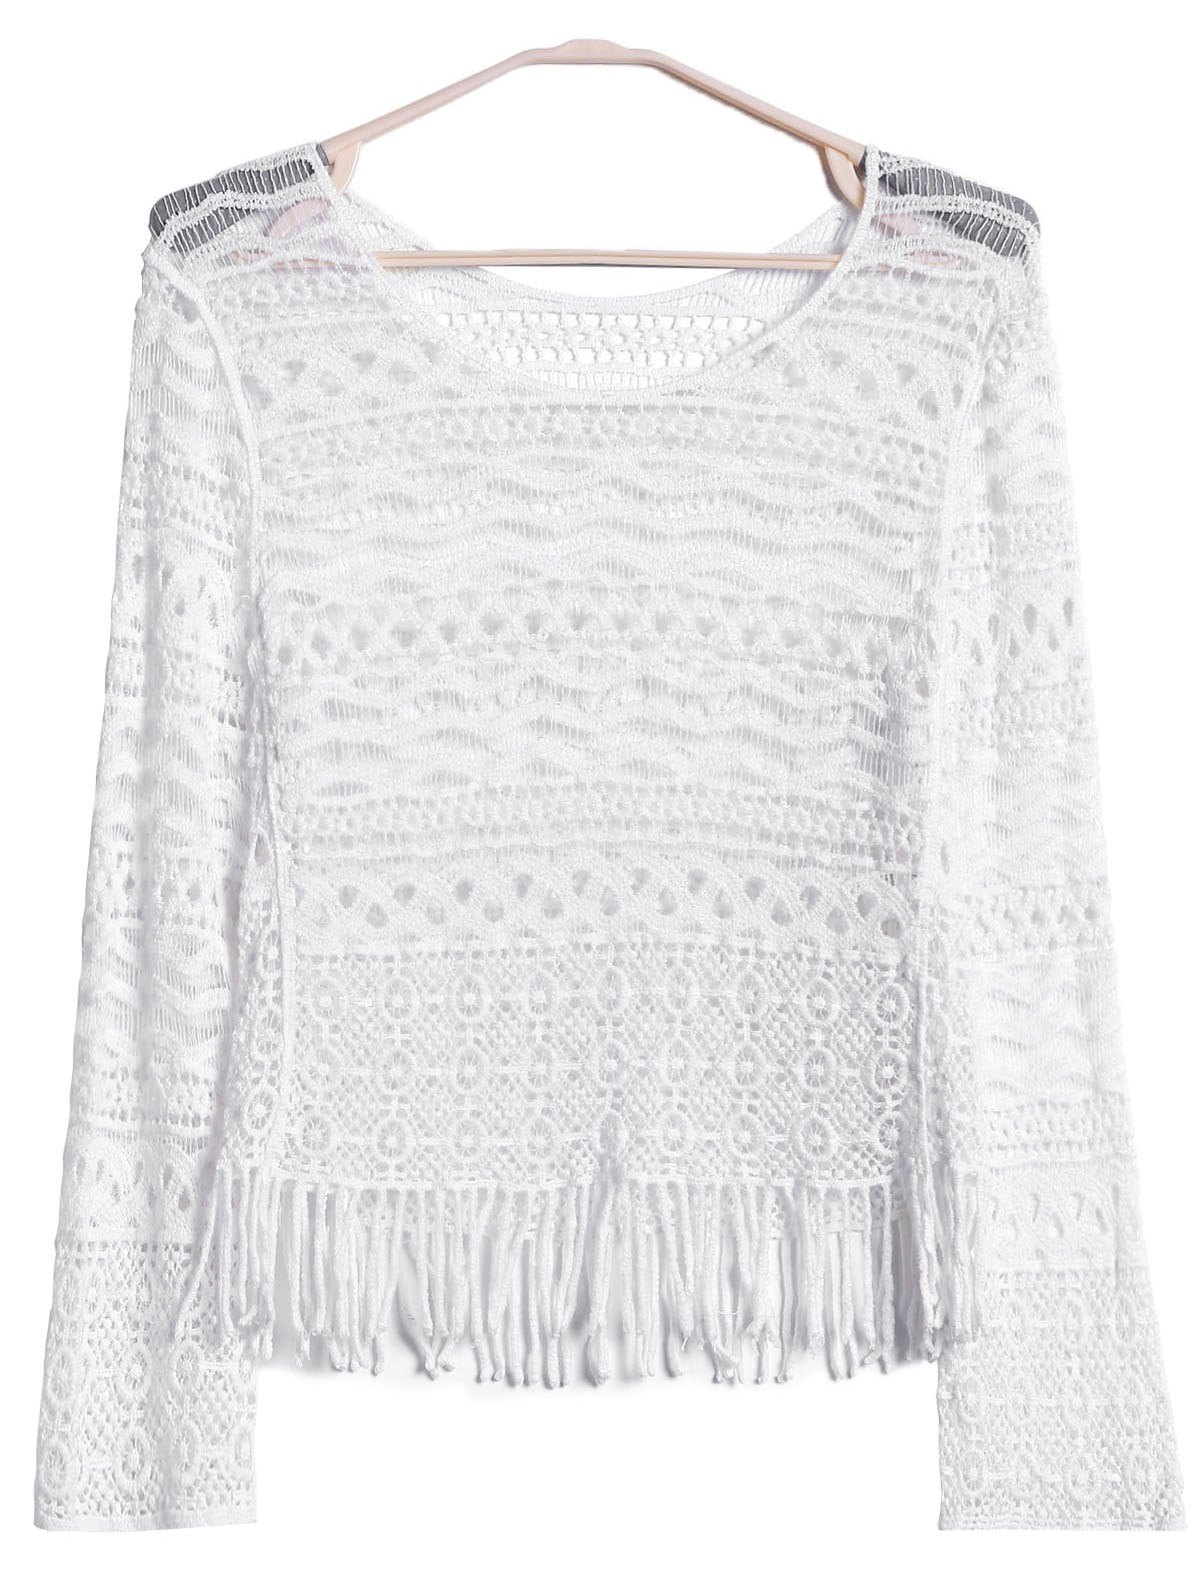 Sexy Scoop Neck Long Sleeve Hollow Out Tassels Embellished Women's Cover-Up